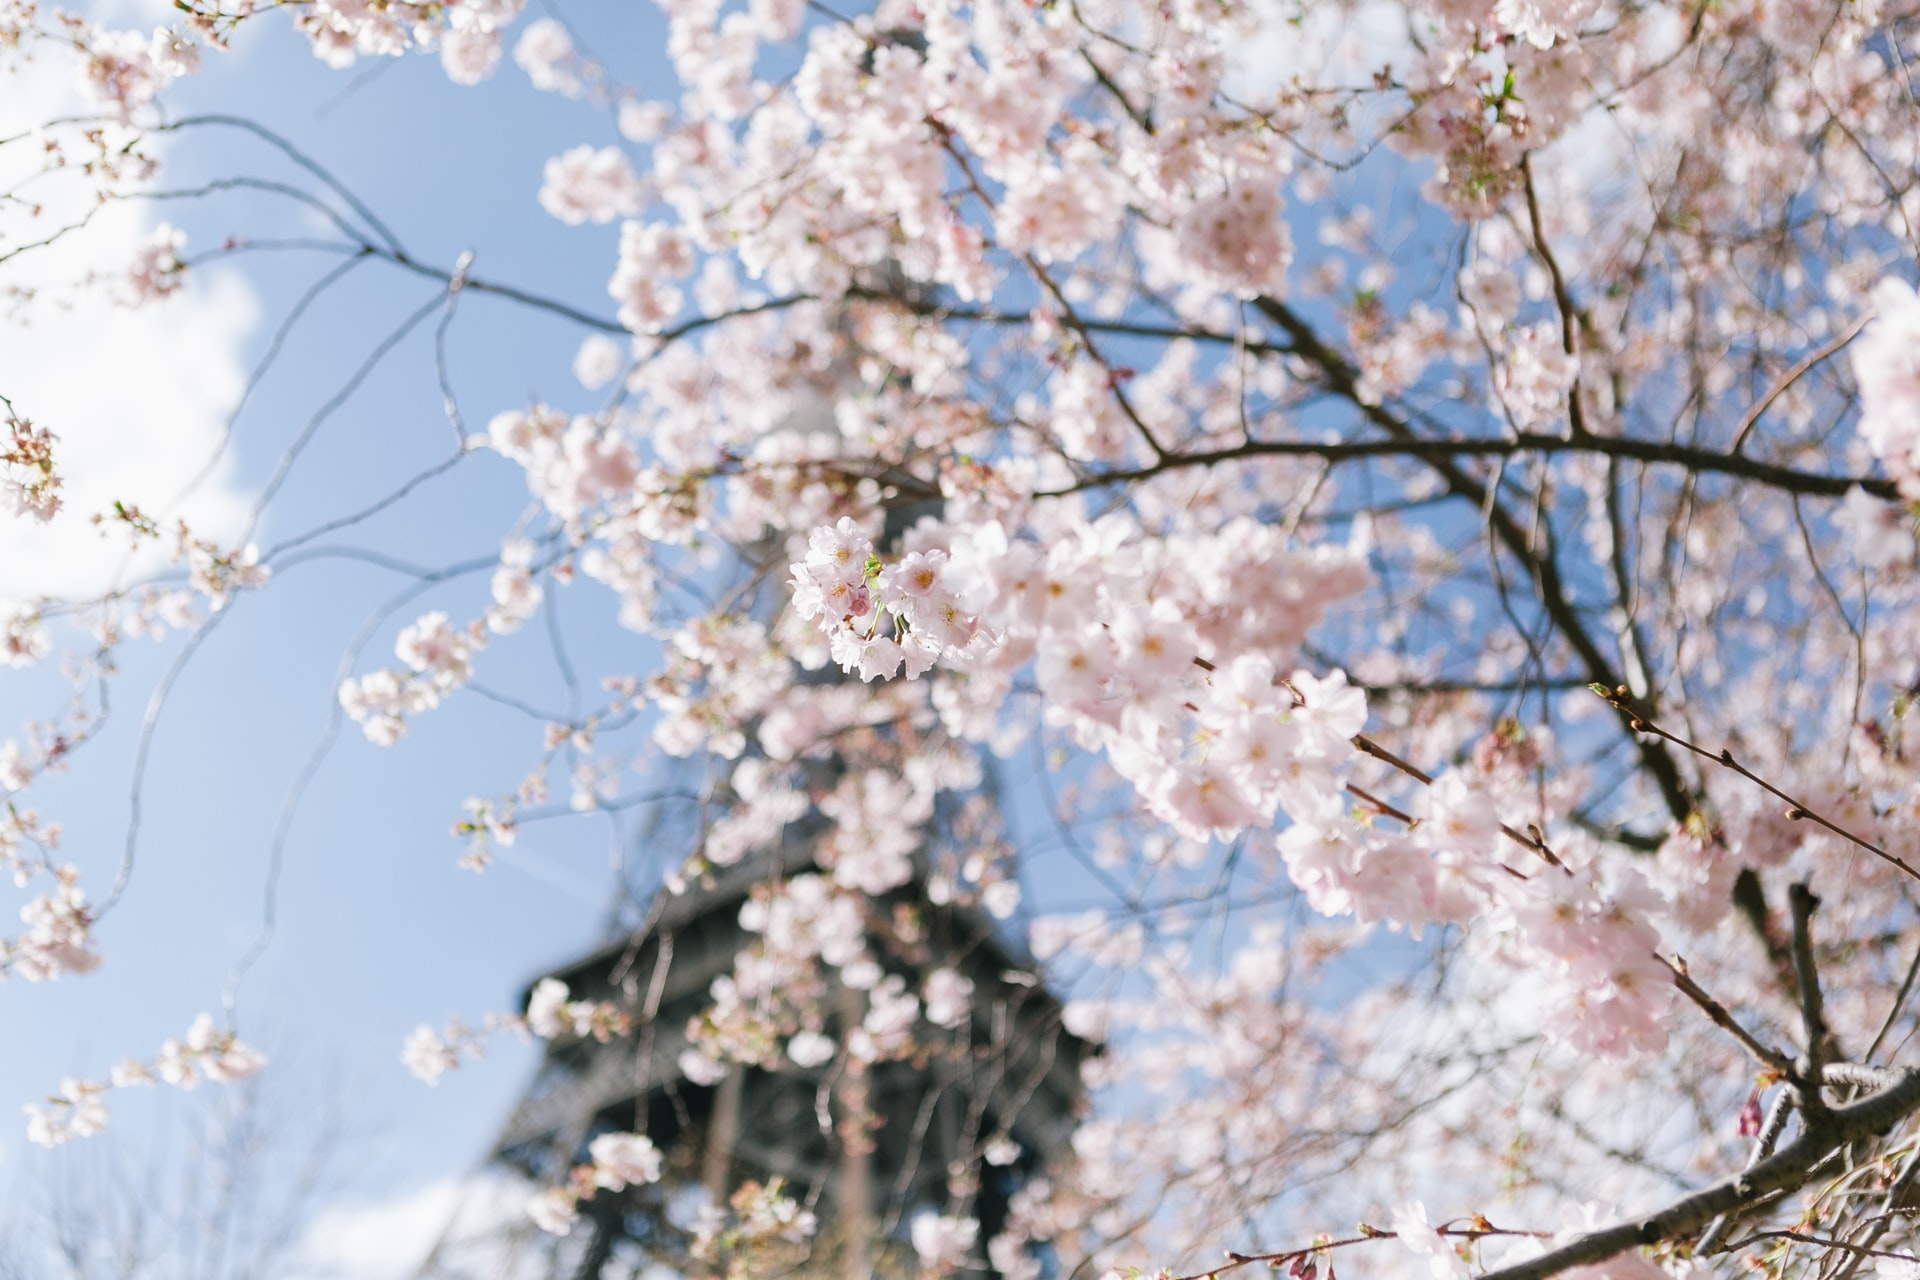 Cherry blossoms at the Eiffel Tower